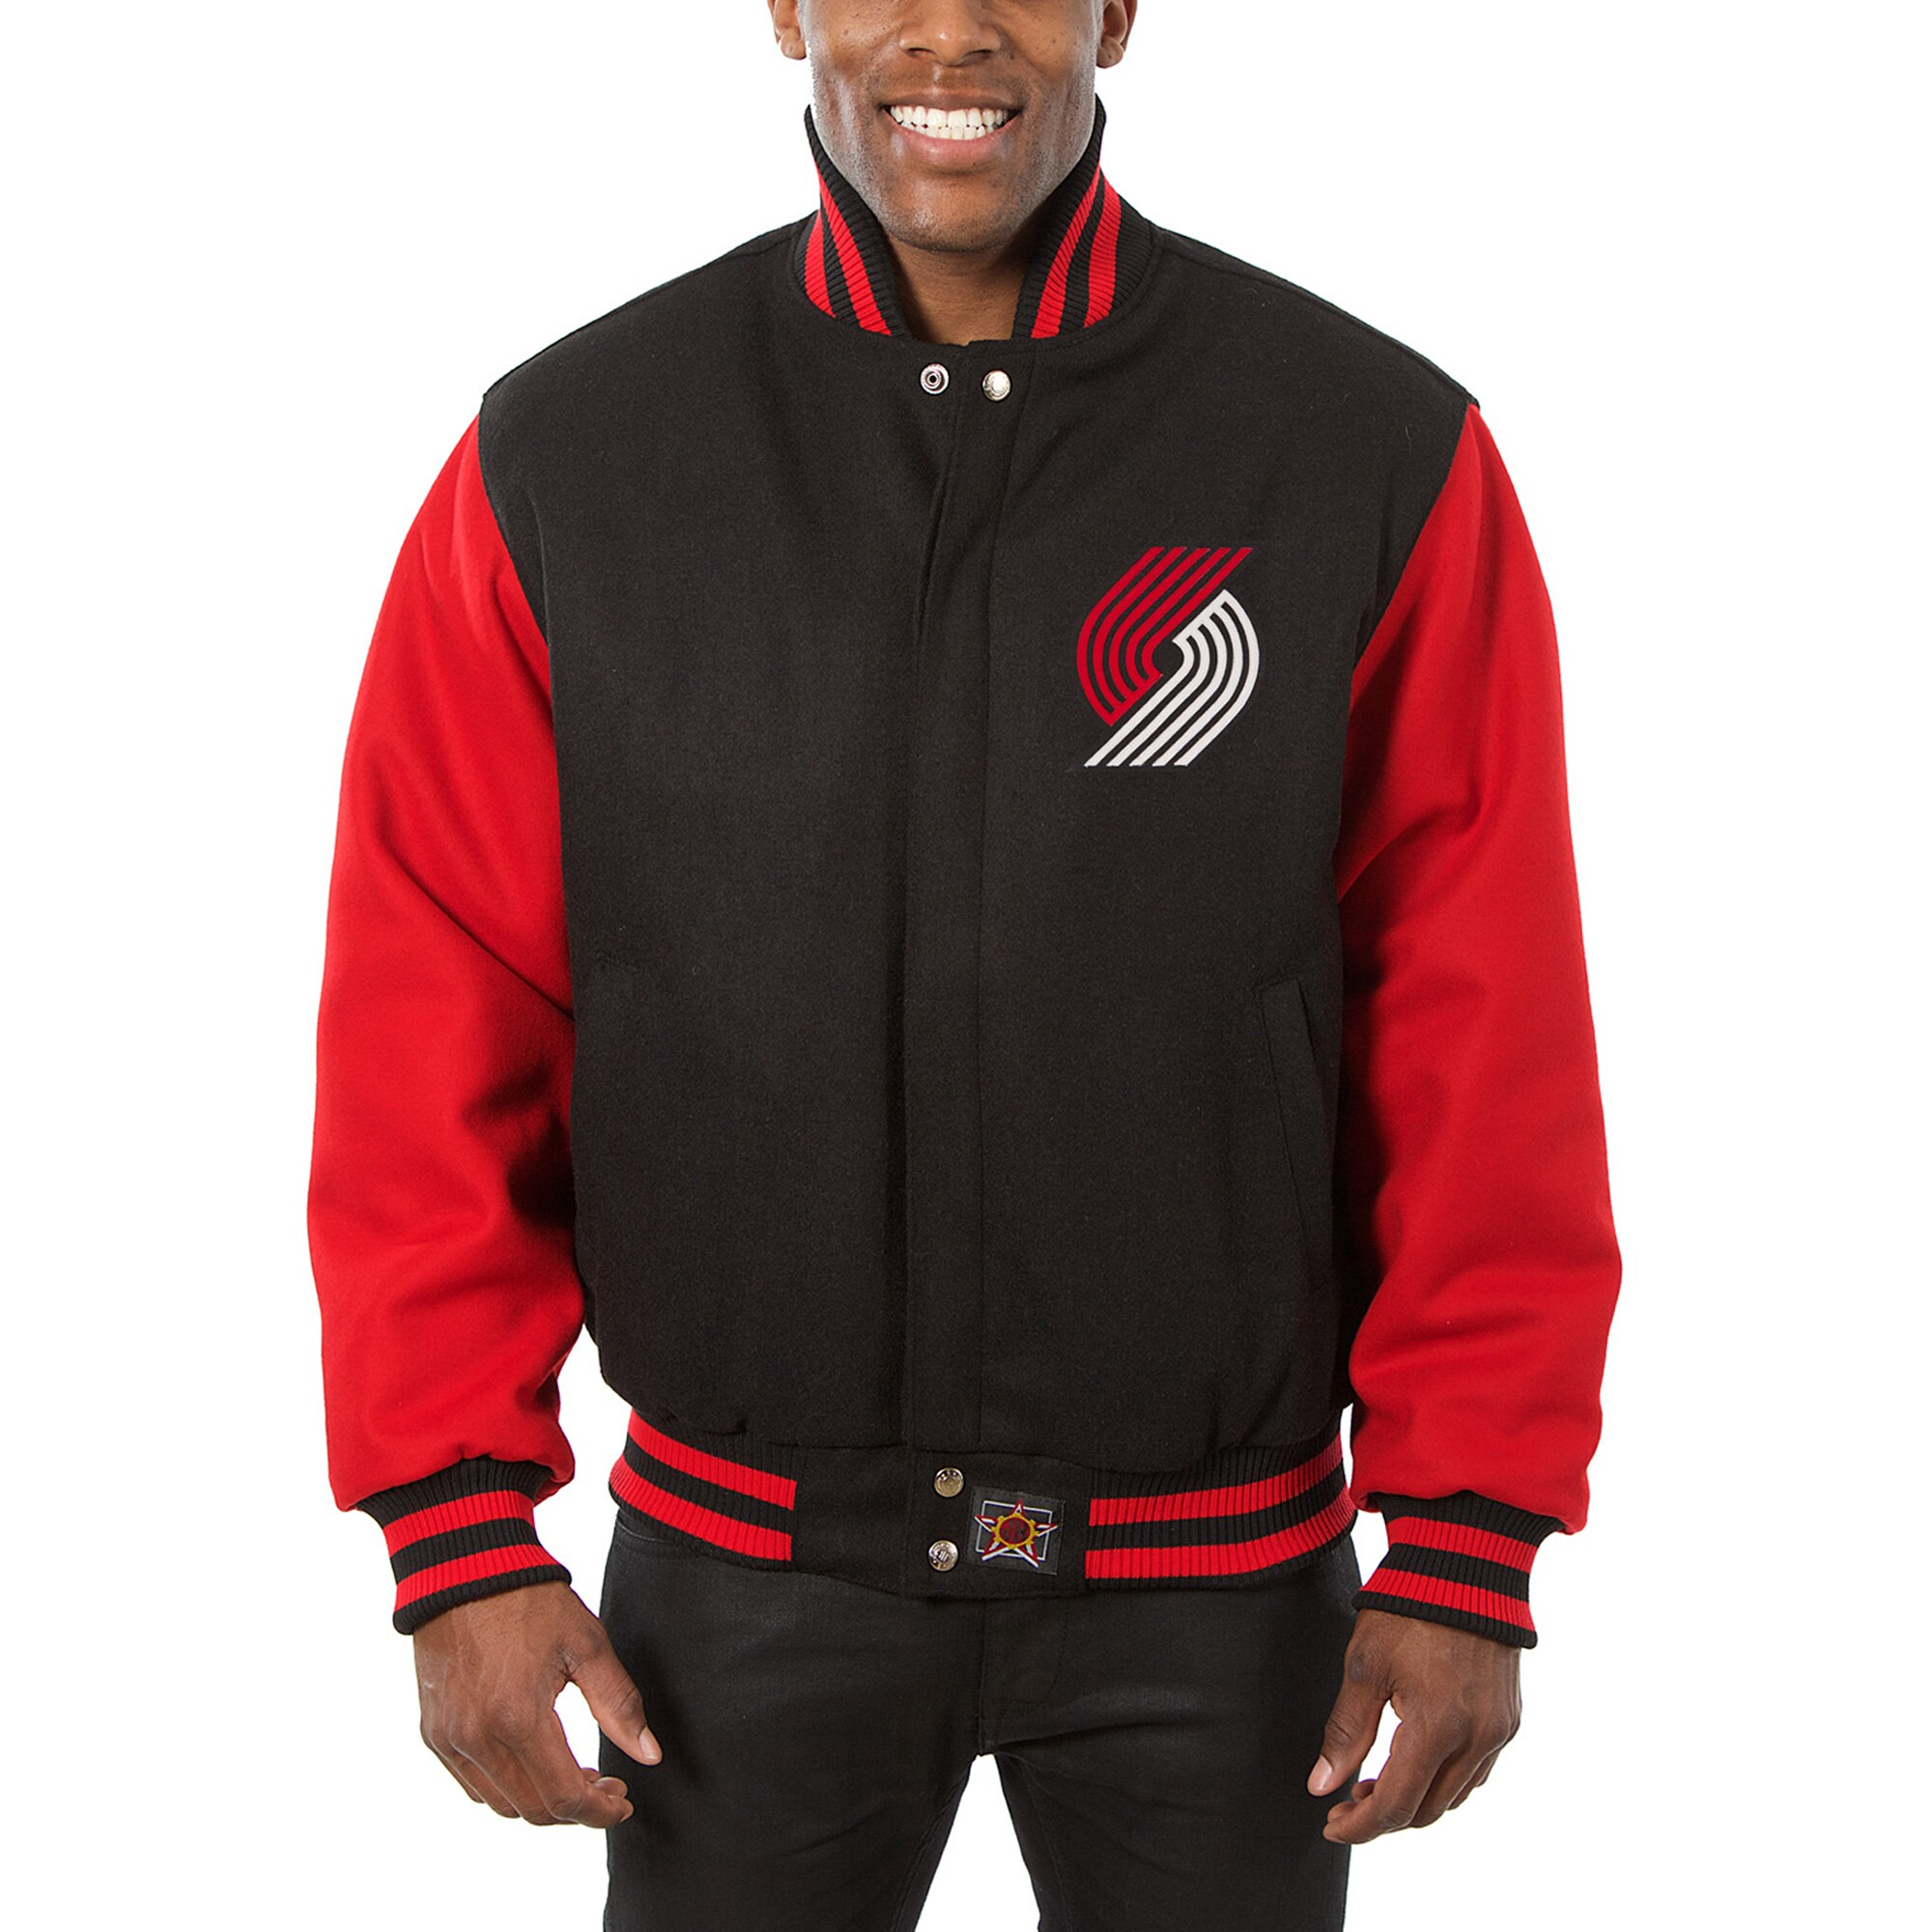 Portland Trail Blazers JH Design Big & Tall All Wool Jacket with Leather Logo - Black/Red